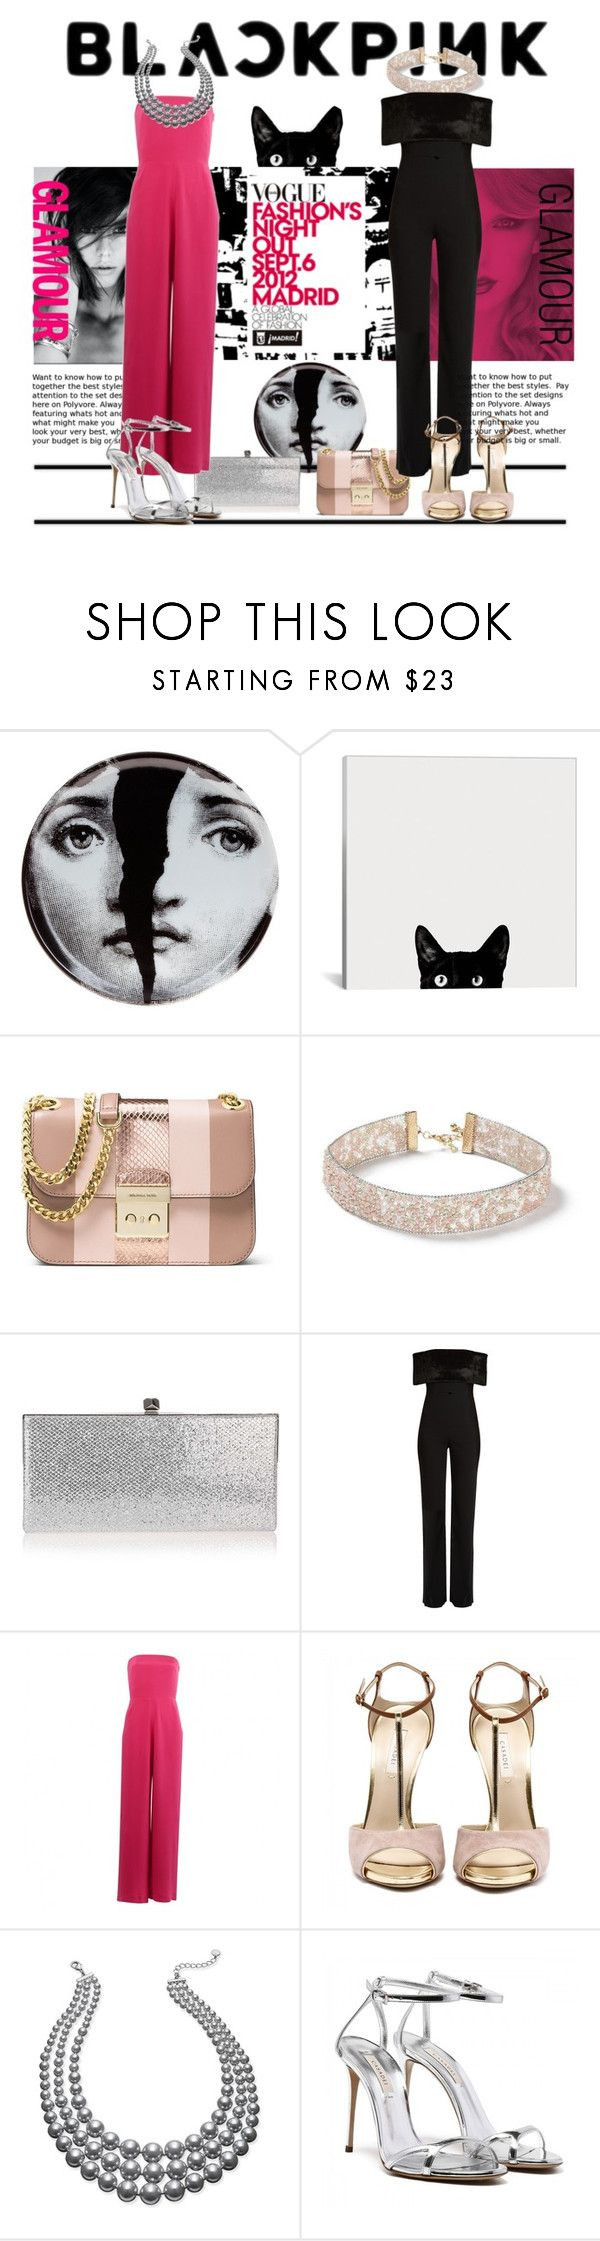 """""""Spitting Image!"""" by debjani-d ❤ liked on Polyvore featuring Fornasetti, MICHAEL Michael Kors, Miss Selfridge, Jimmy Choo, Galvan, 3.1 Phillip Lim and Charter Club"""